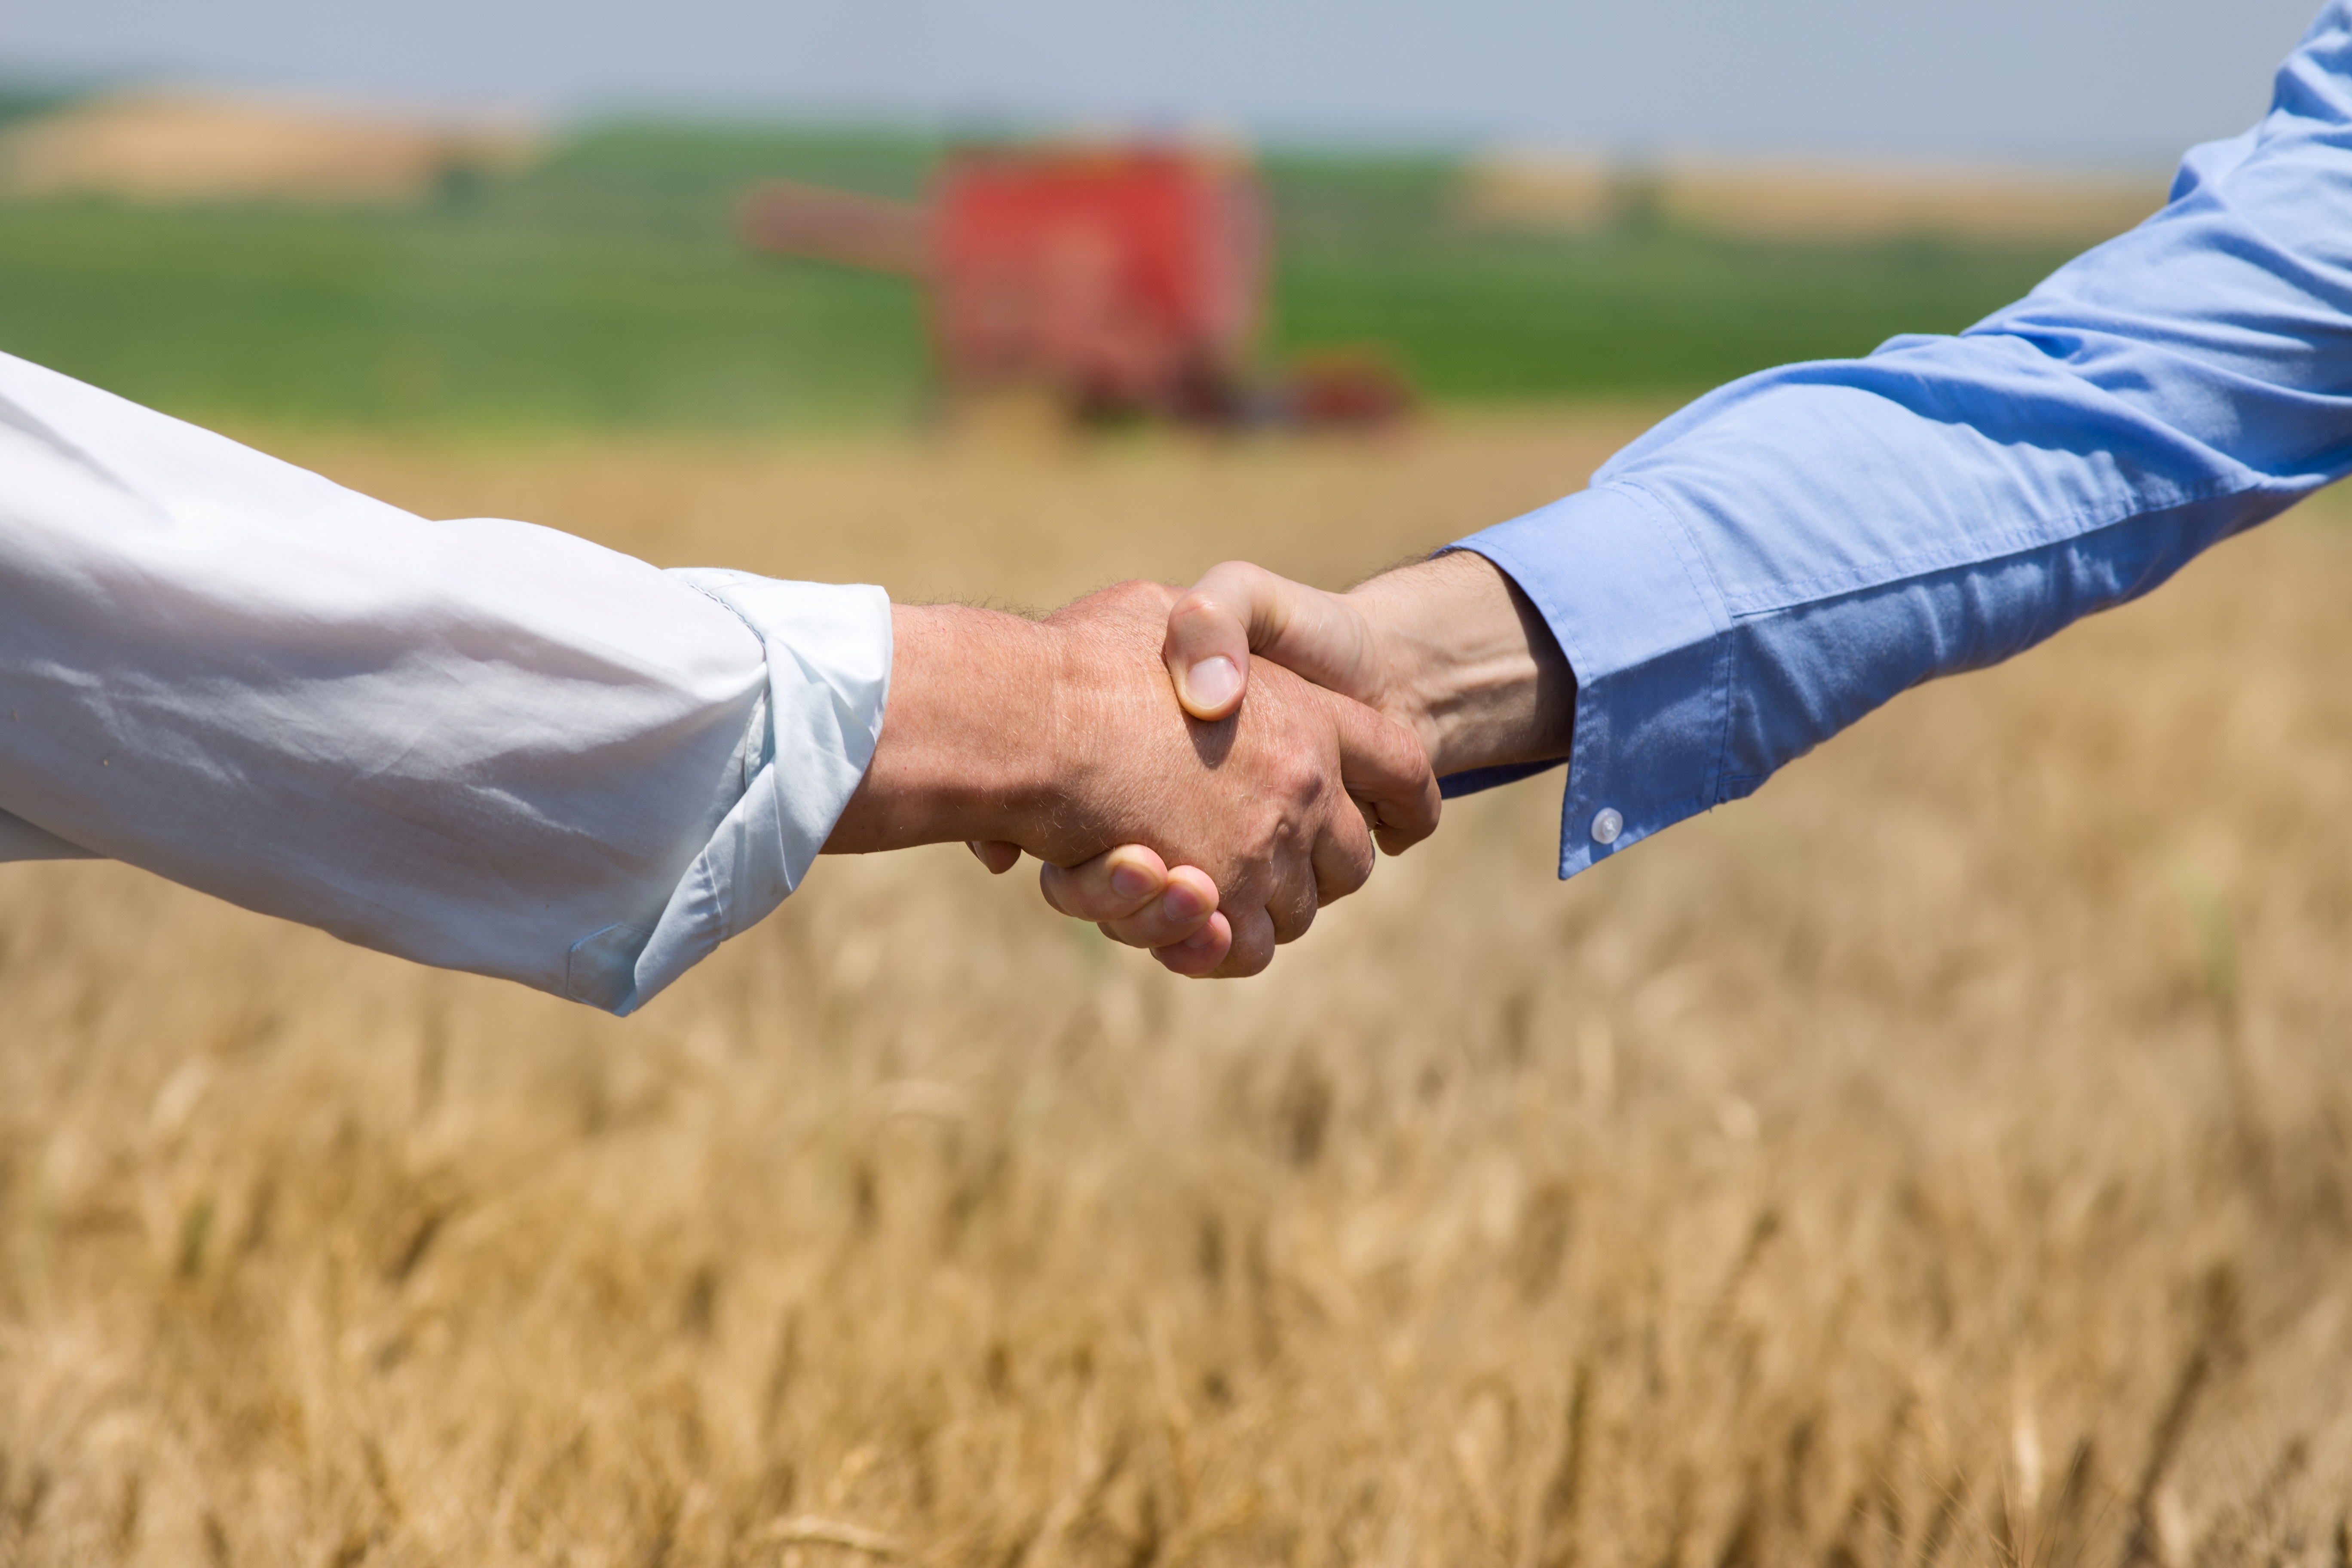 How the Land Buying Process Works from Offer to Close | Rethink:Rural